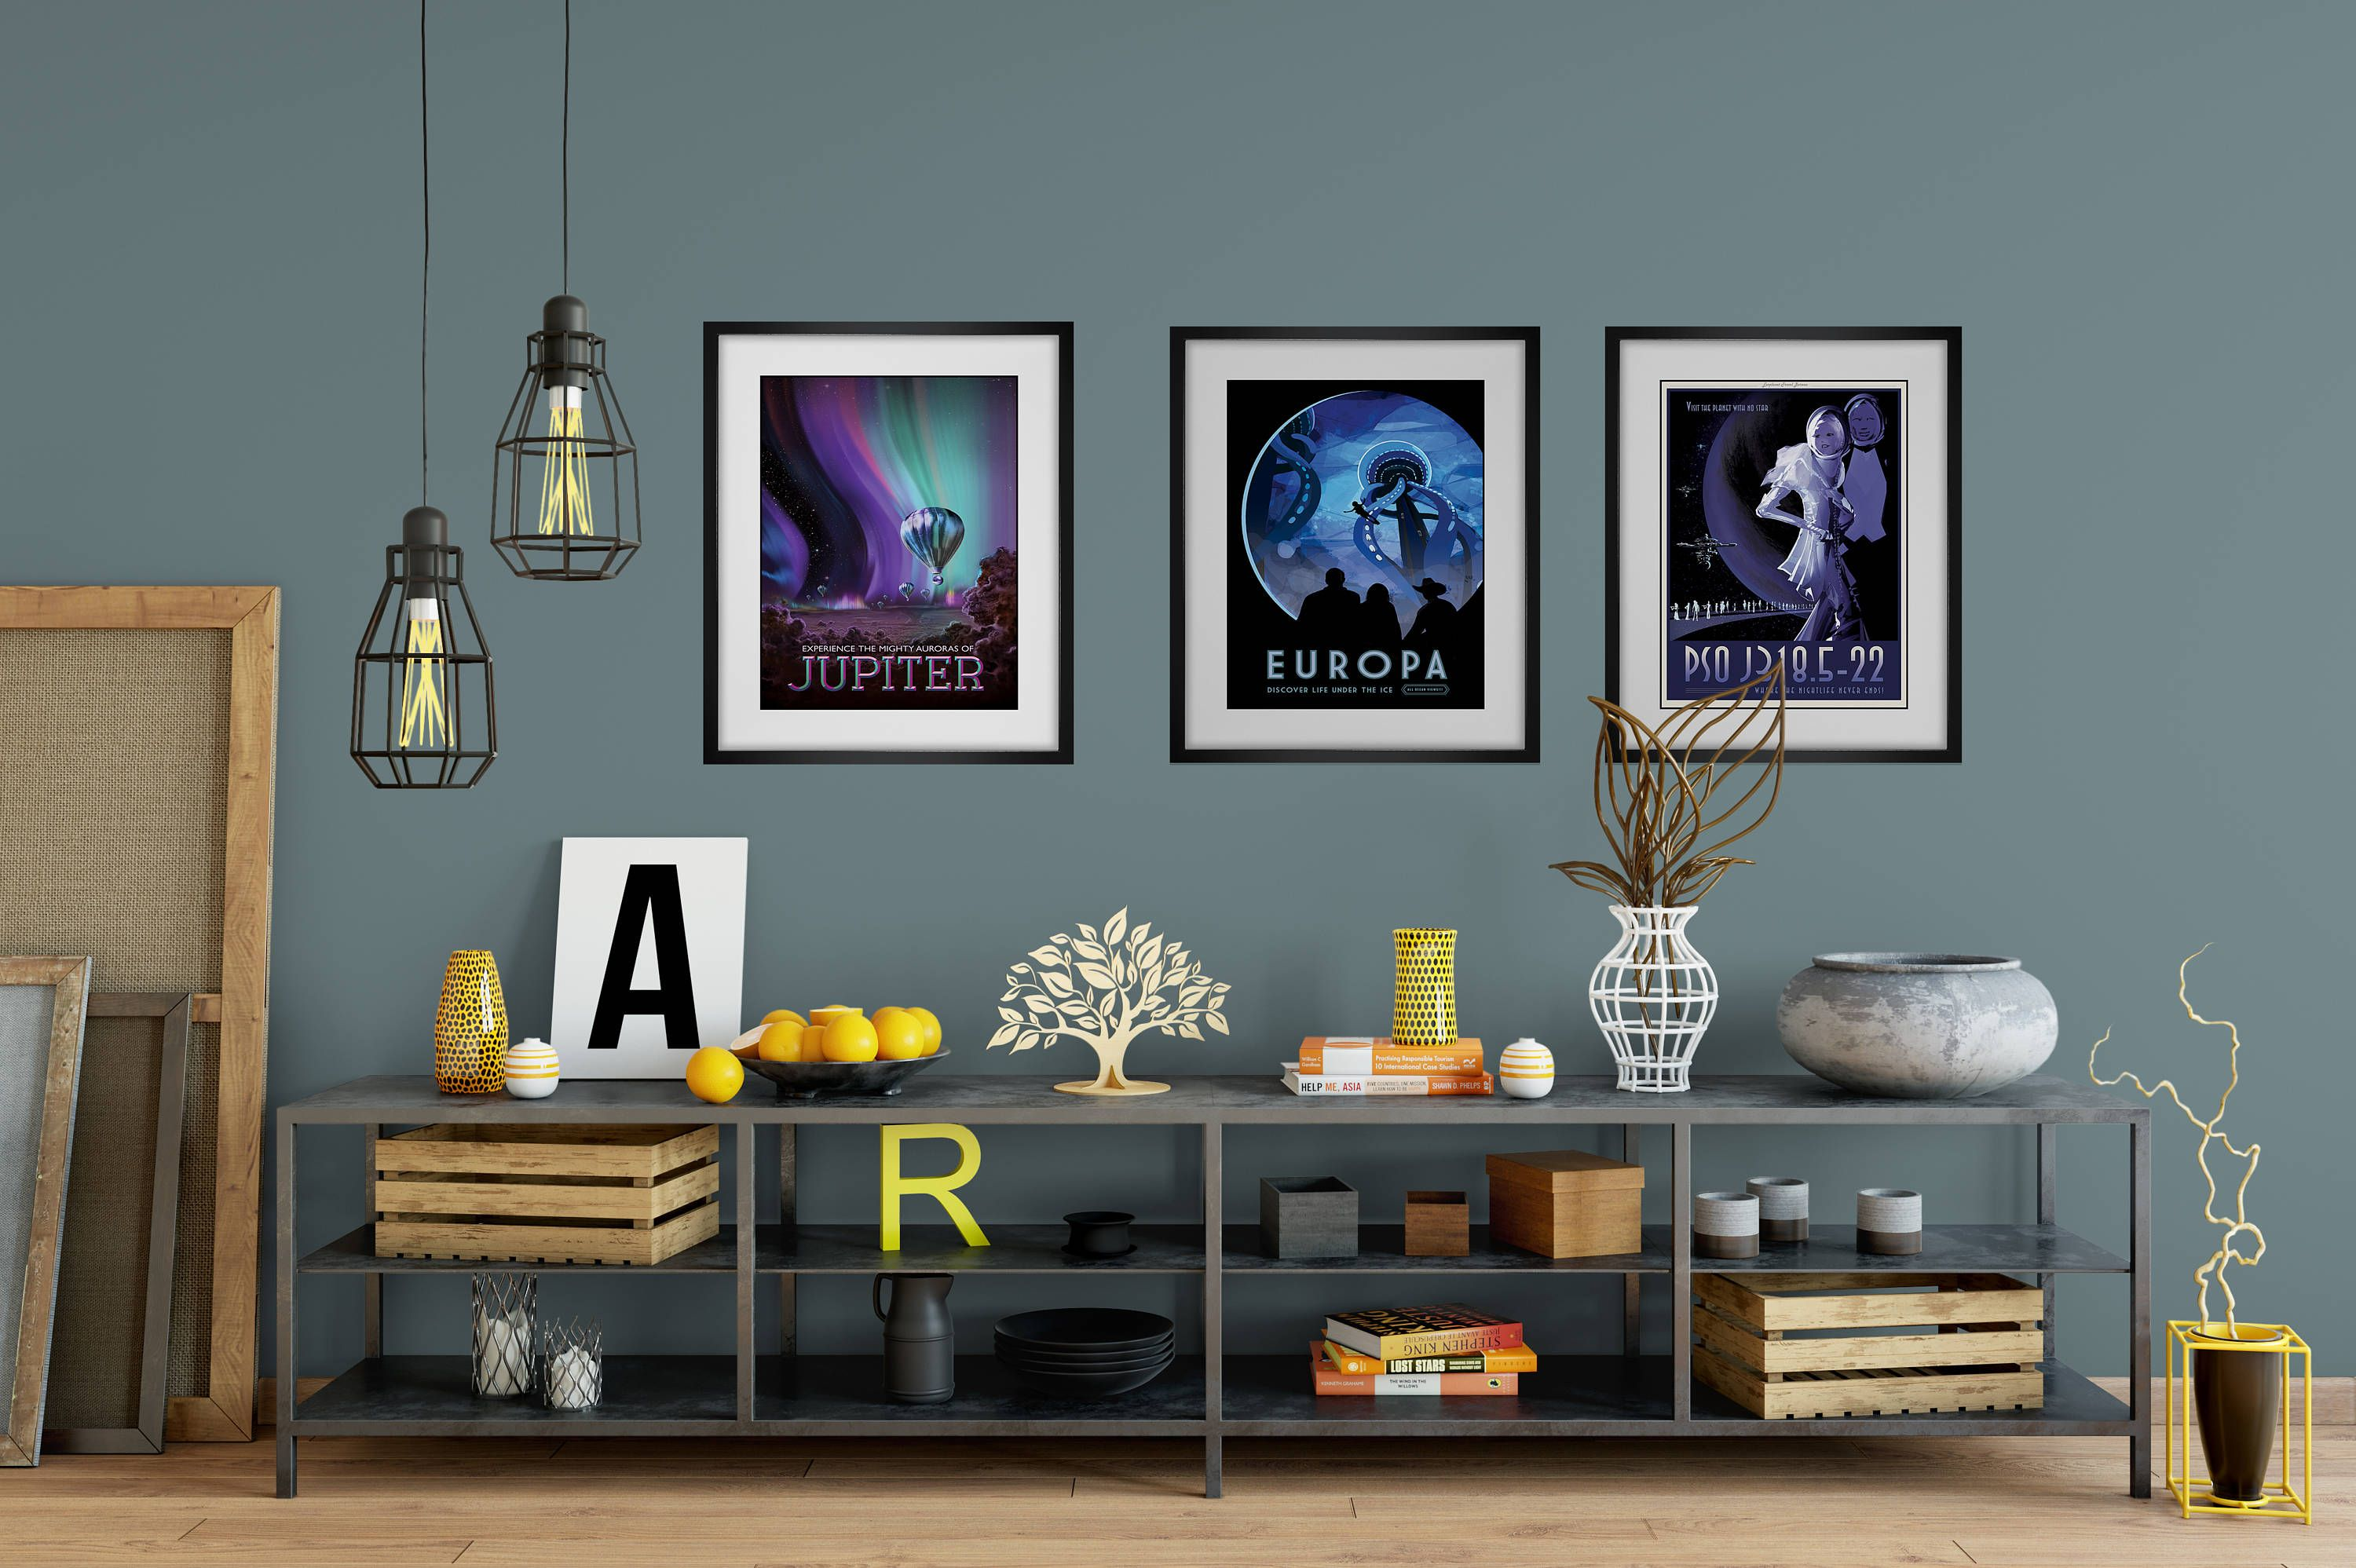 Nasa Poster Wall Art Space Artwork Set Of 3 Space Prints Space Poster Art Outerspace Decor By Picturebypicture On Etsy Frames On Wall Frame Mockups Design